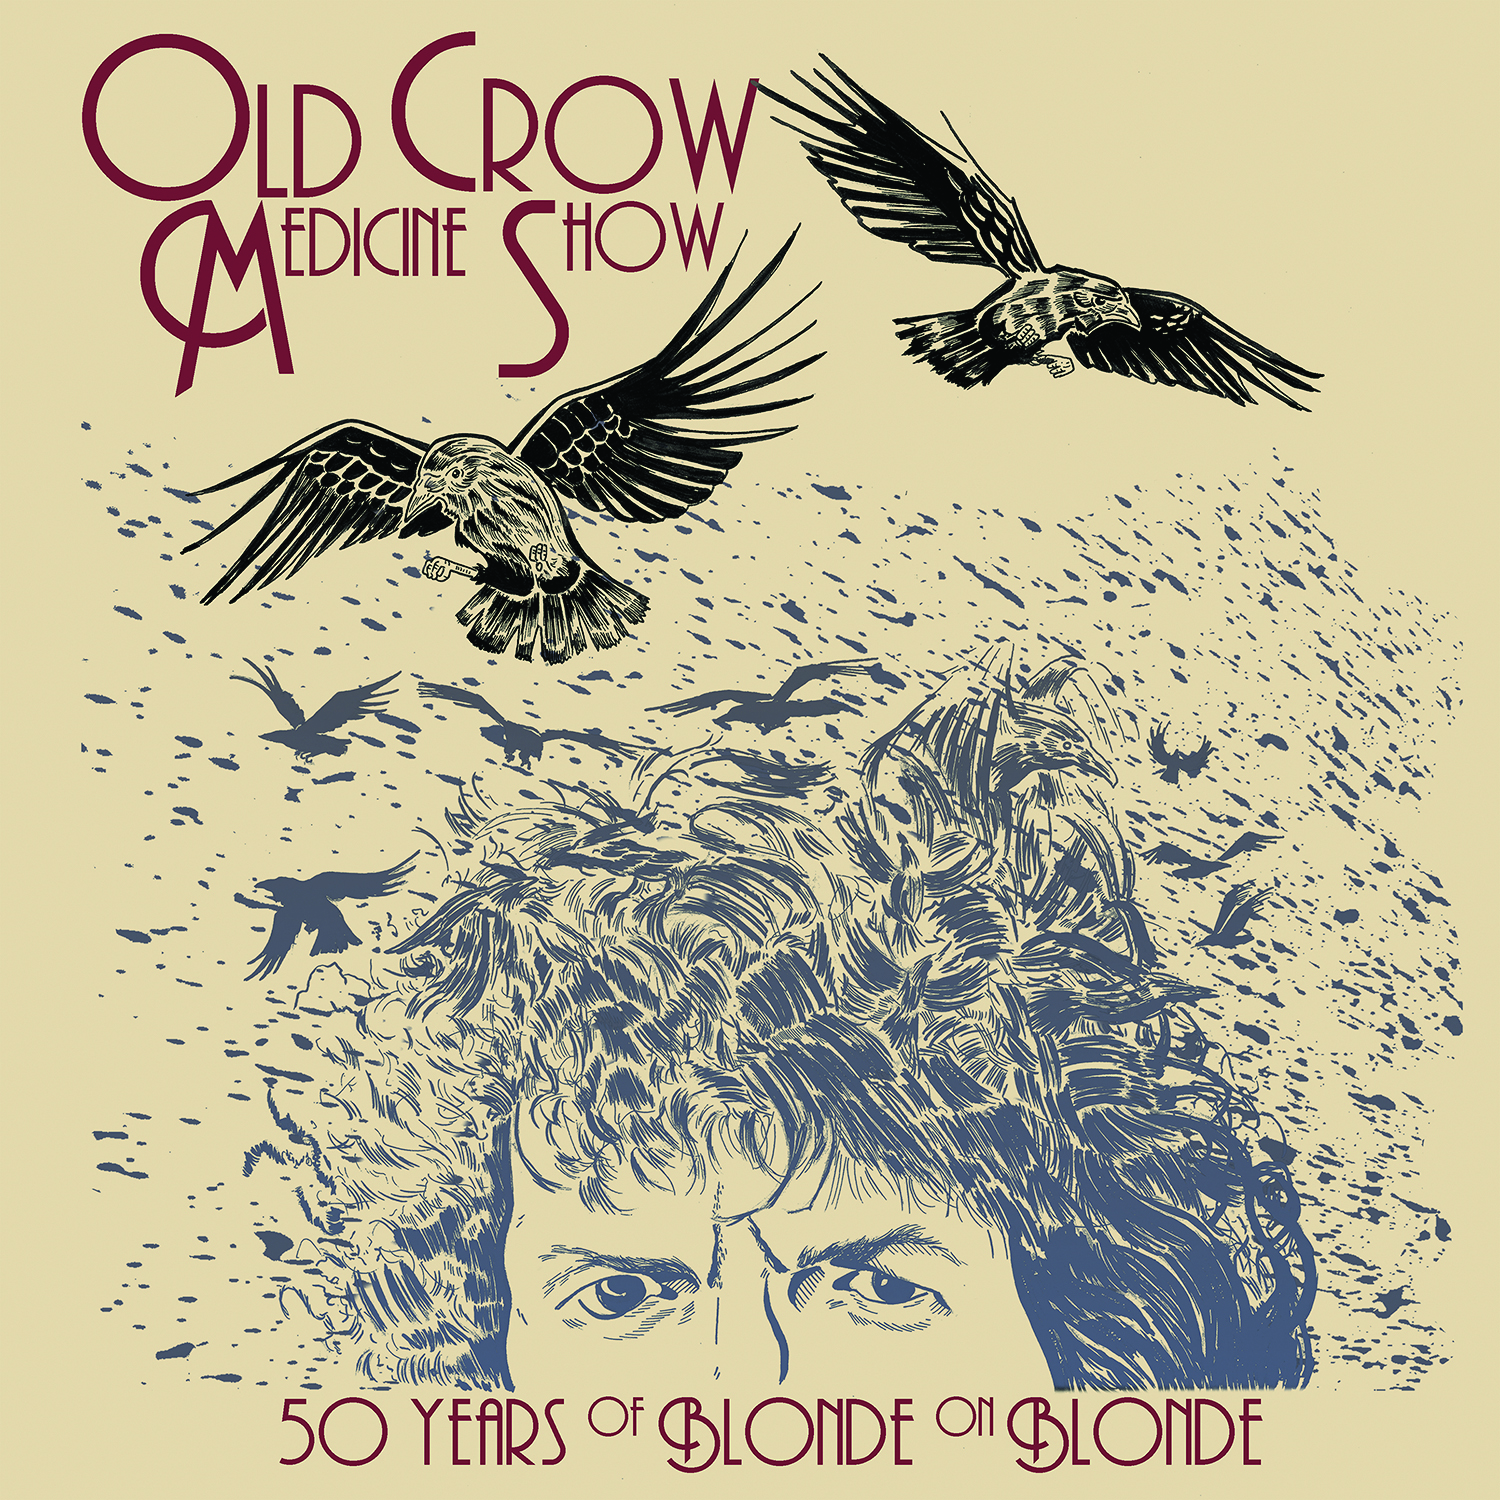 Old Crow Medicine Show; Cover Art Courtesy of Columbia Records Nashville